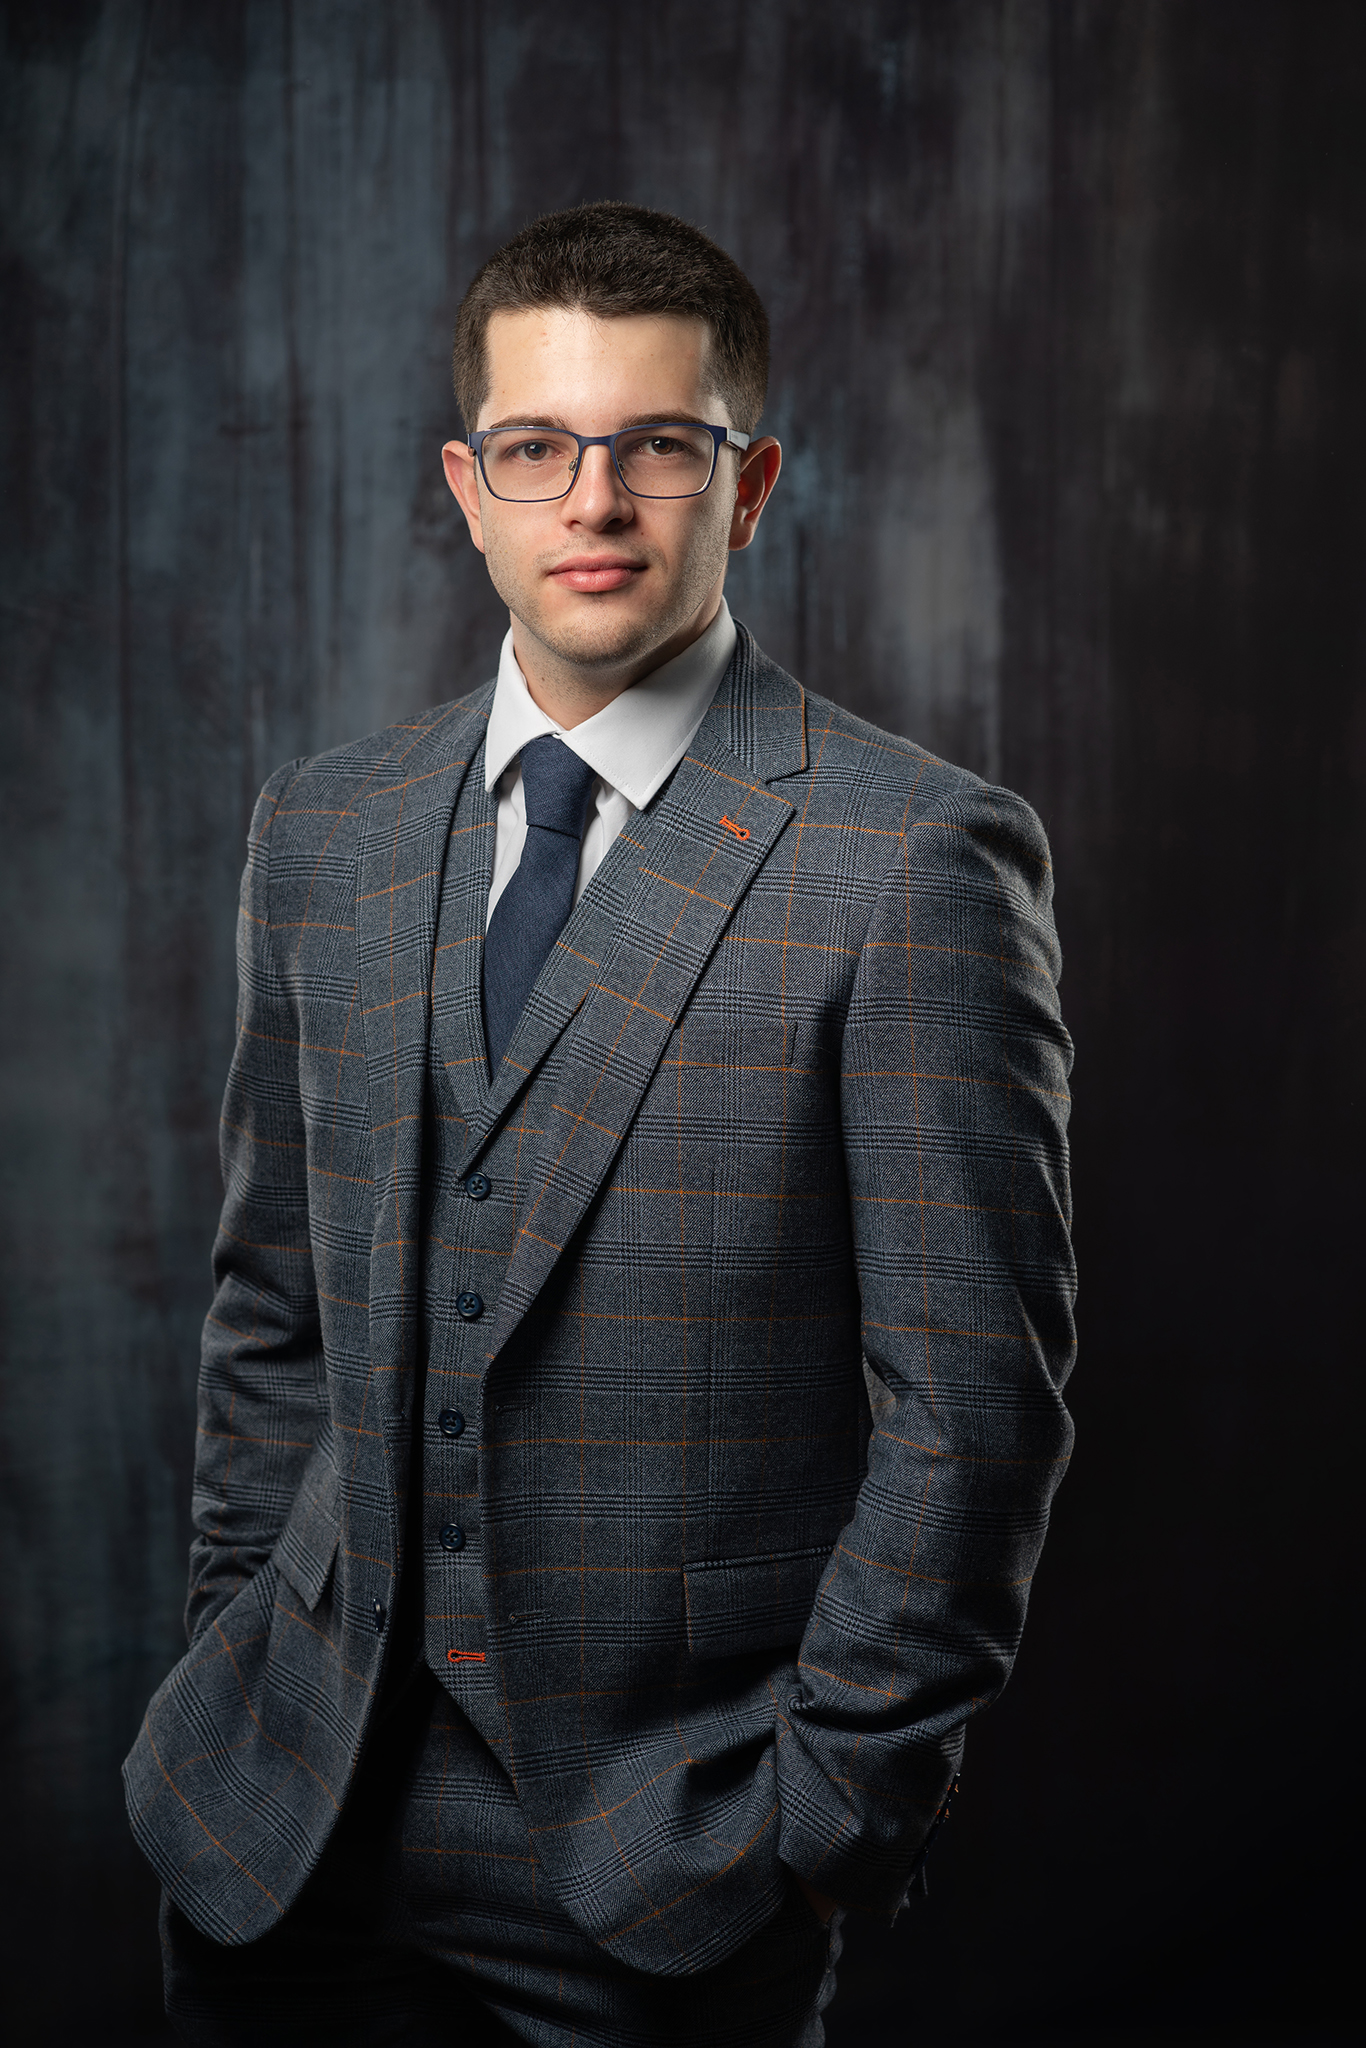 man in suit business headshot by Portrait photographer Preston